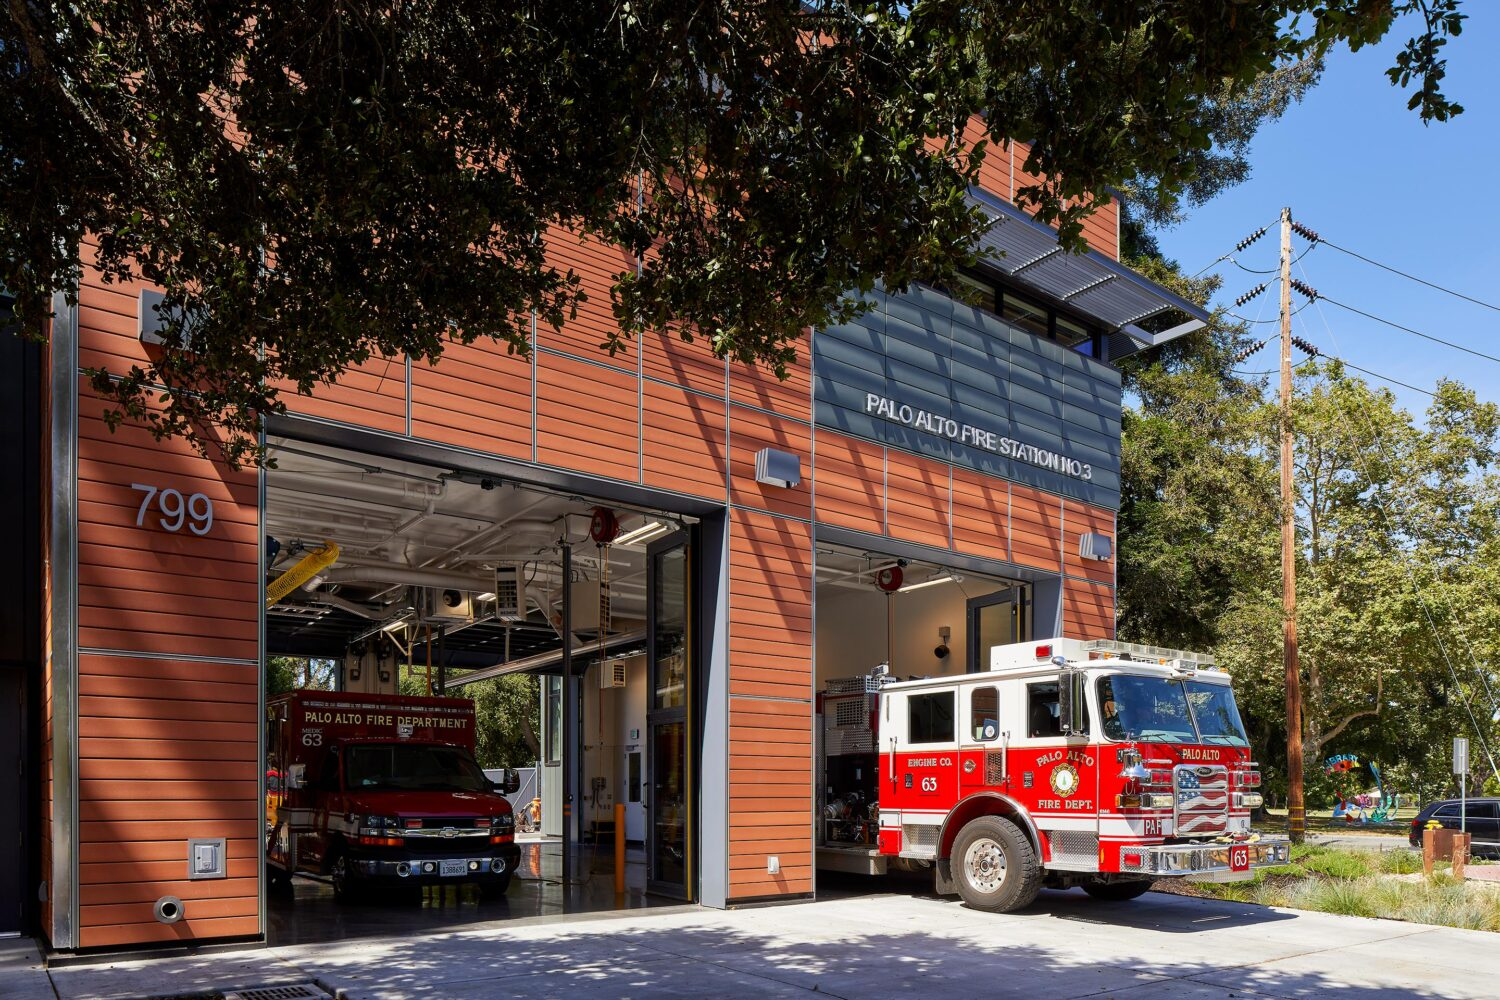 Palo Alto Fire Station No. 3